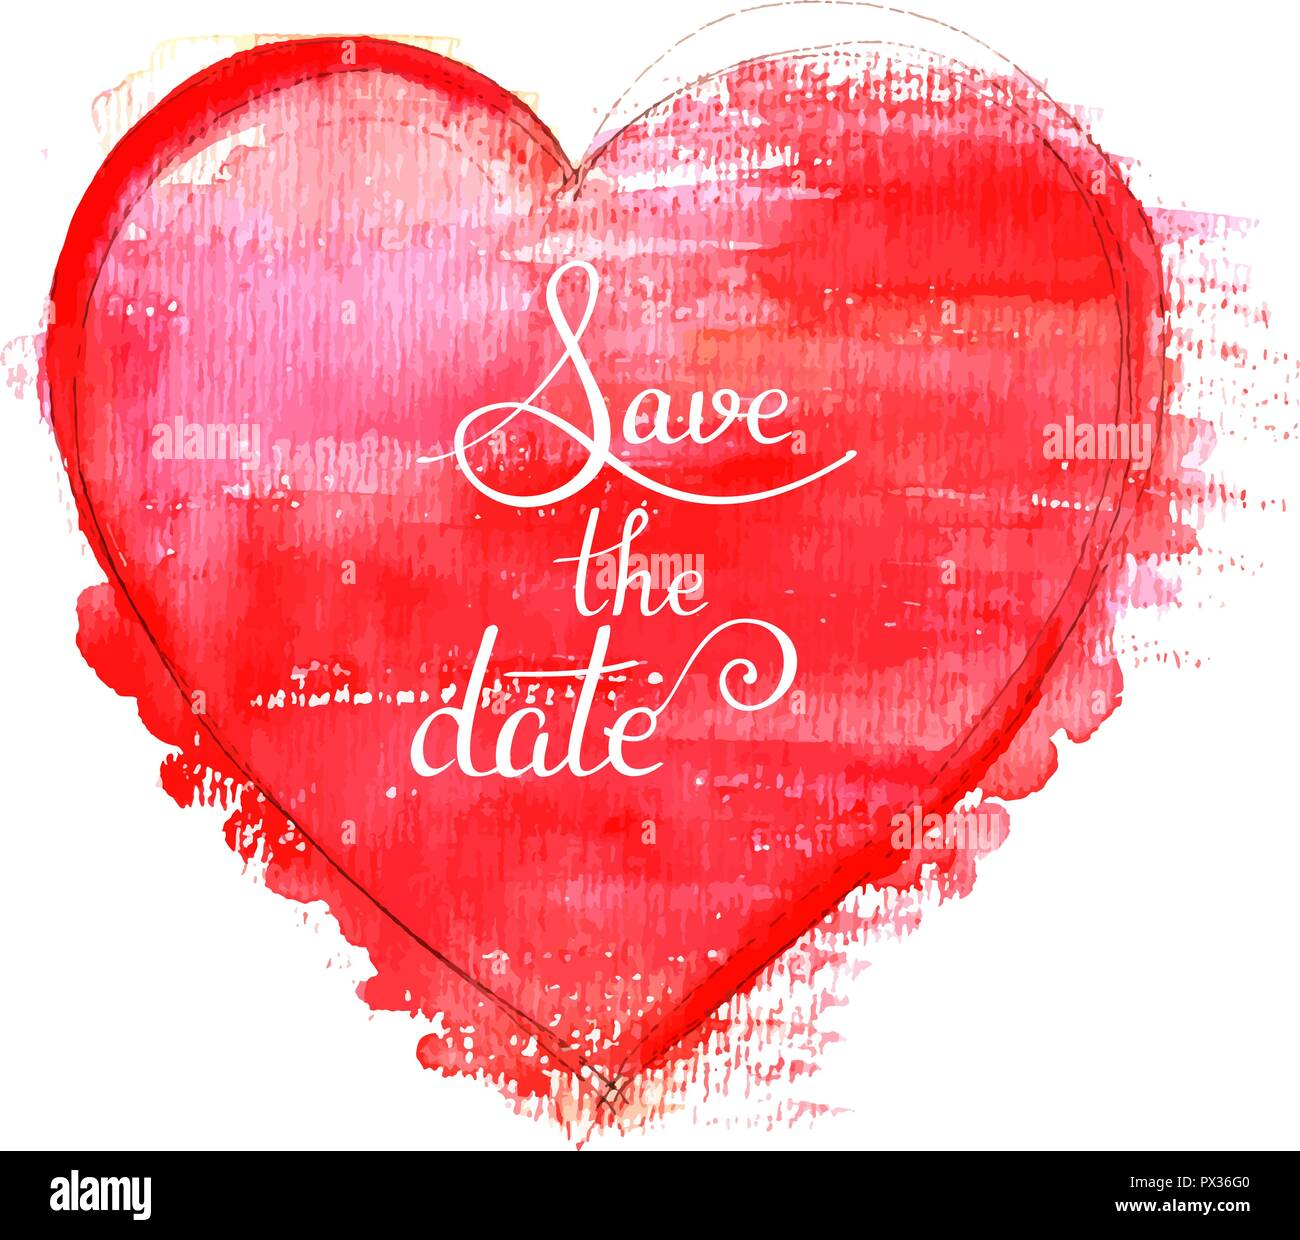 save the date a vector wedding invitation with a red watercolor